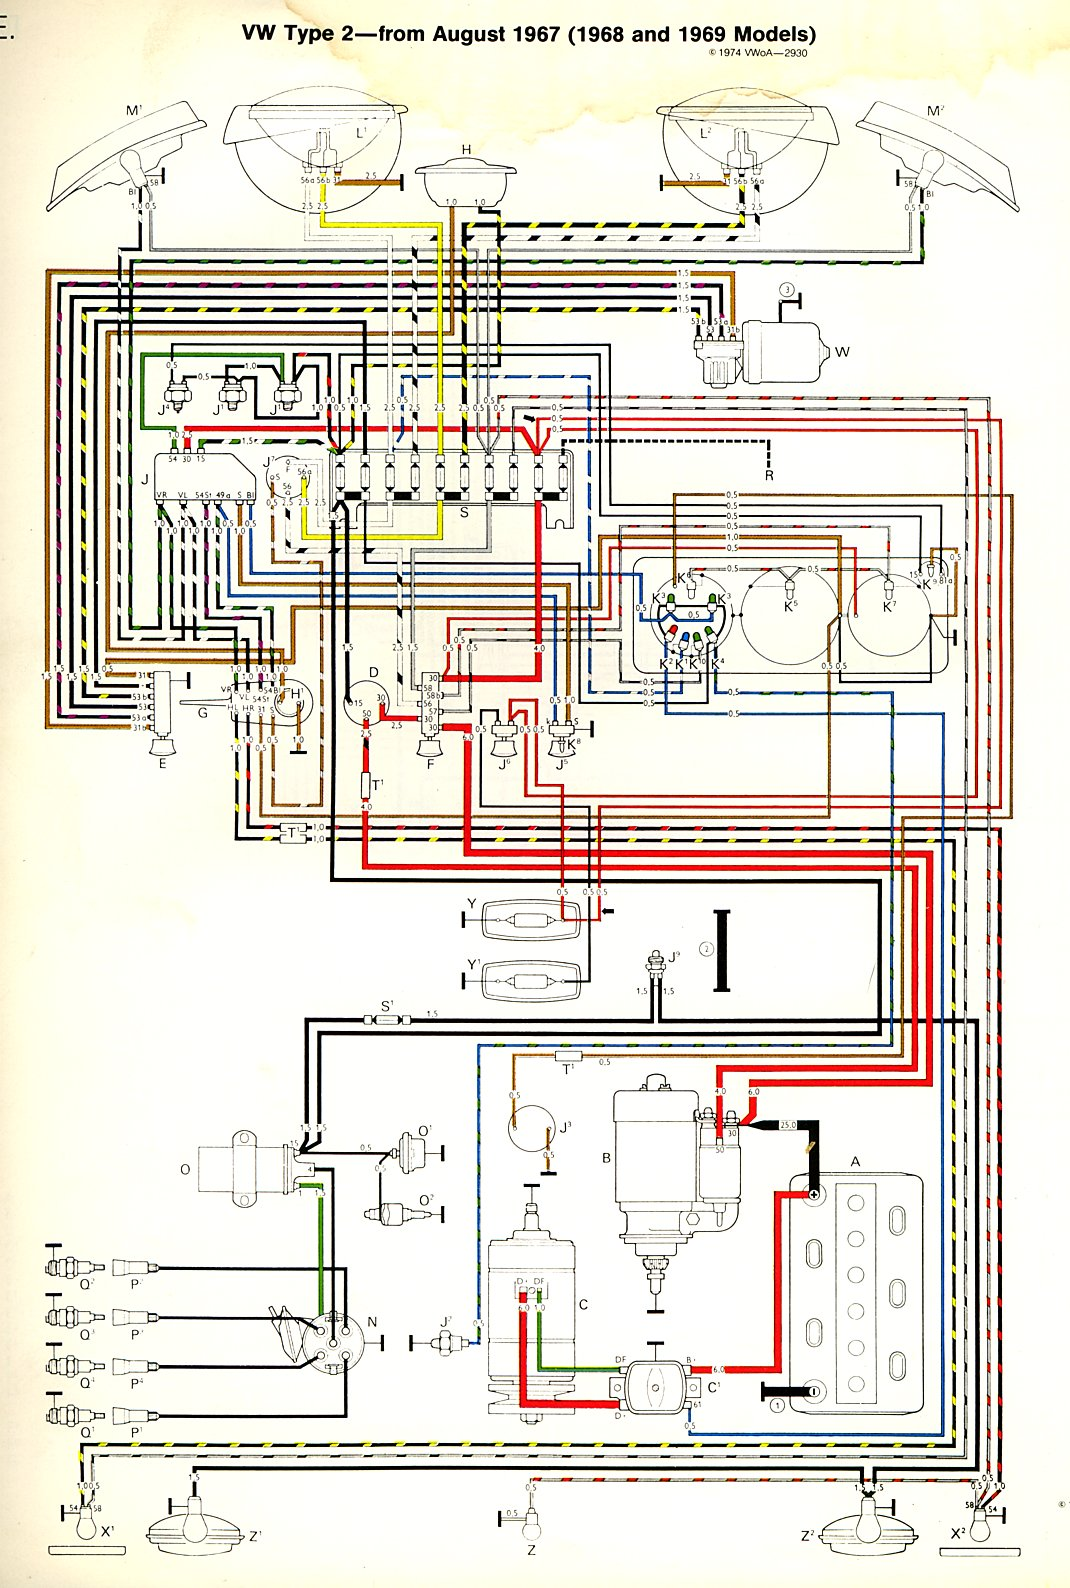 Bus Wiring Diagrams | Wiring Diagram on vw wire harness, vw wiring harness diagram, volkswagen beetle wiring harness, off road wiring harness, vw wiring harness kits, pontiac bonneville wiring harness, motorcycle wiring harness, camper wiring harness, vw engine wiring harness, vw bus alternator wiring, dodge challenger wiring harness, vw bus ignition wiring, vw thing wiring harness, porsche wiring harness, kia sportage wiring harness, volkswagen type 3 wiring harness, vw trike wiring harness, vintage vw wiring harness, trailer wiring harness, honda accord wiring harness,